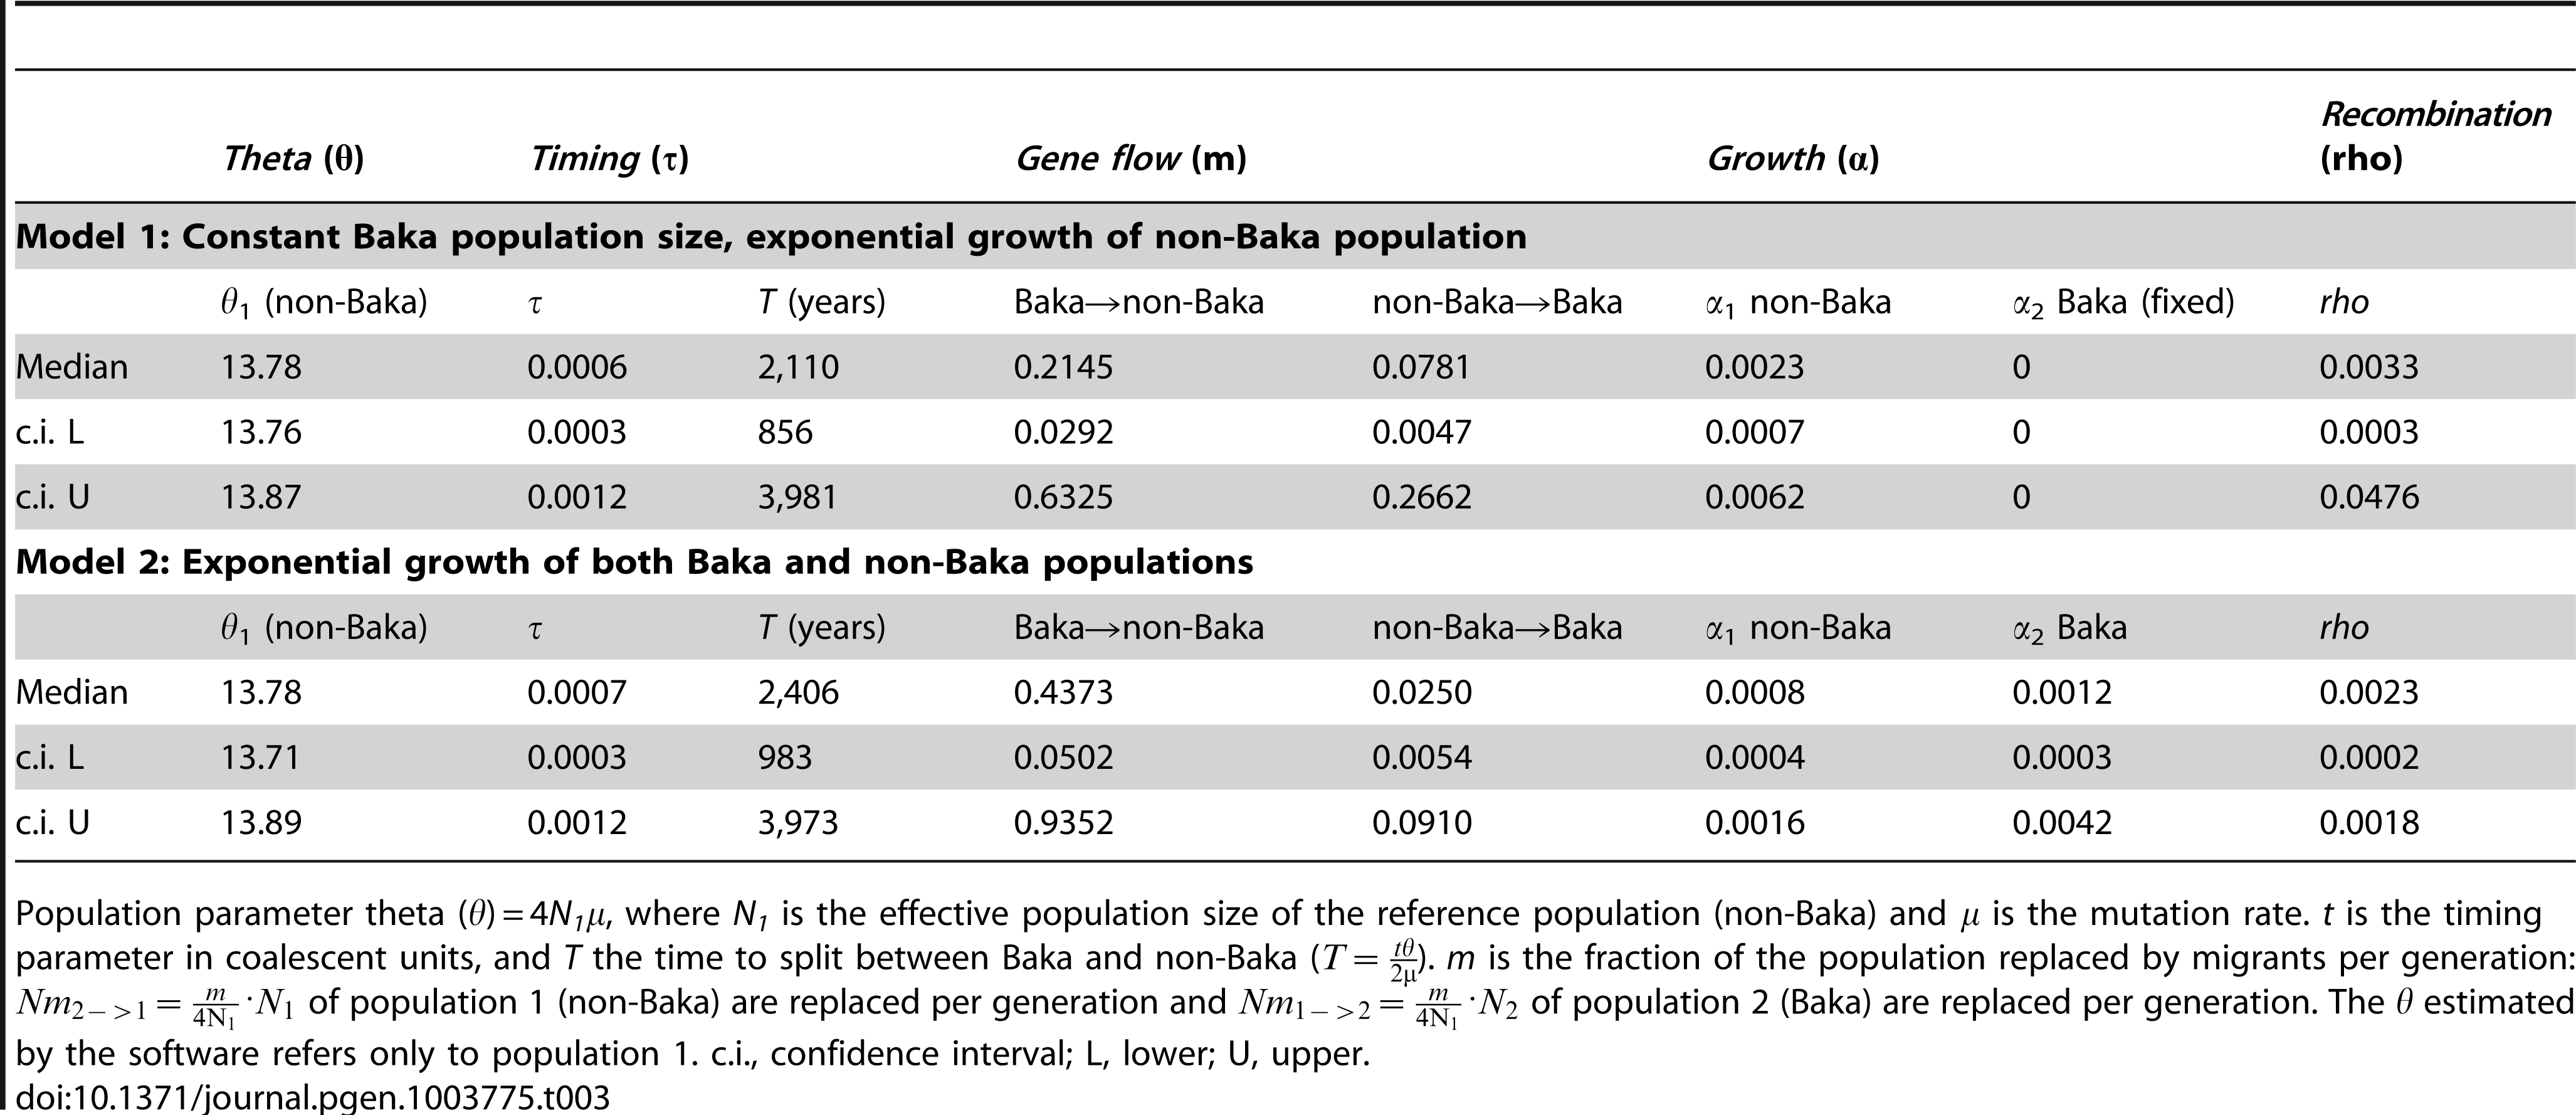 Population demographic parameters for <i>H. pylori</i> from Baka Pygmies and non-Baka agriculturalists derived using an isolation-with-migration model and assuming two demographically explicit scenarios.